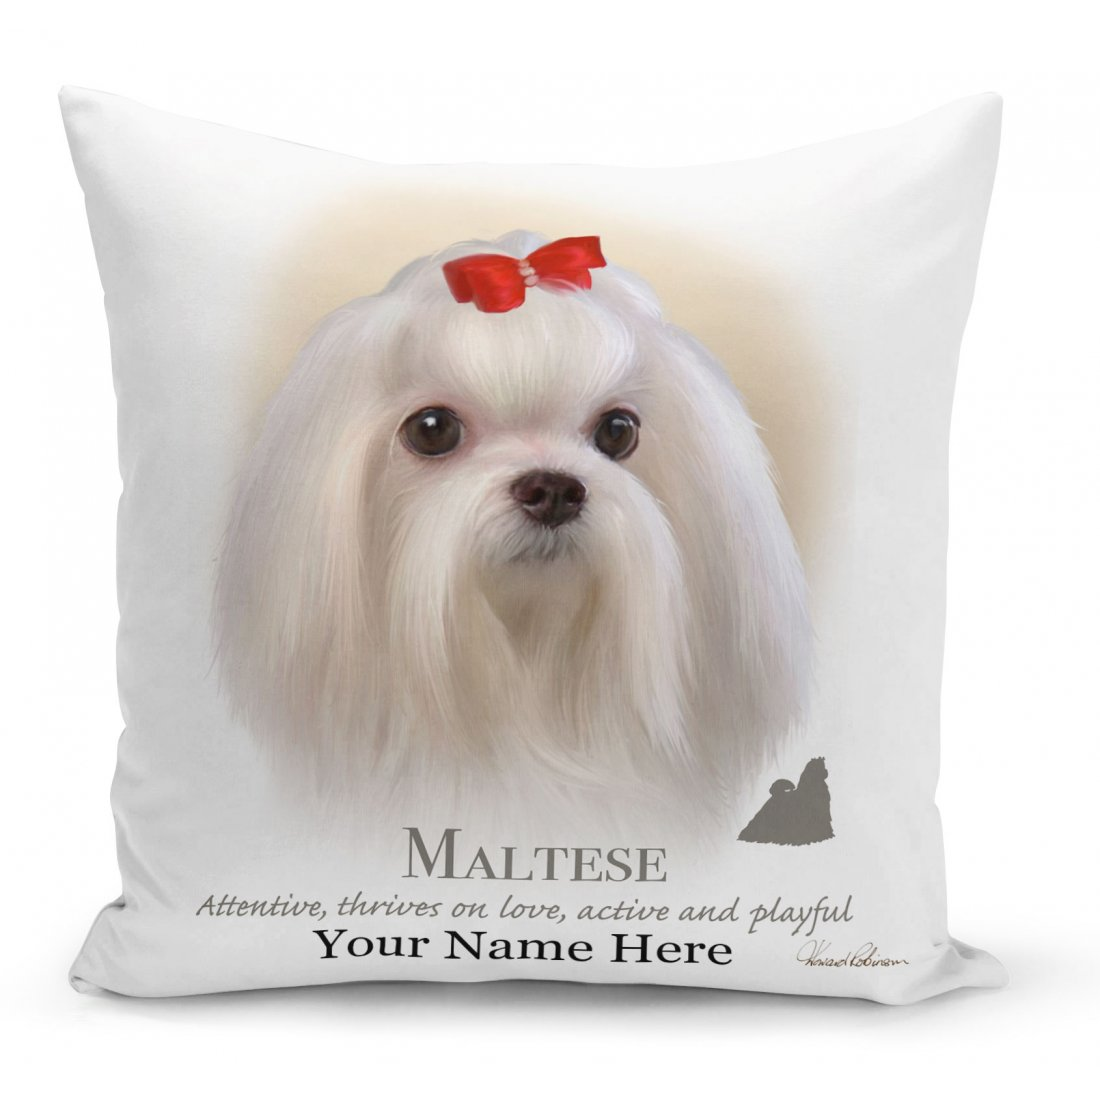 Maltese Dog Cushion